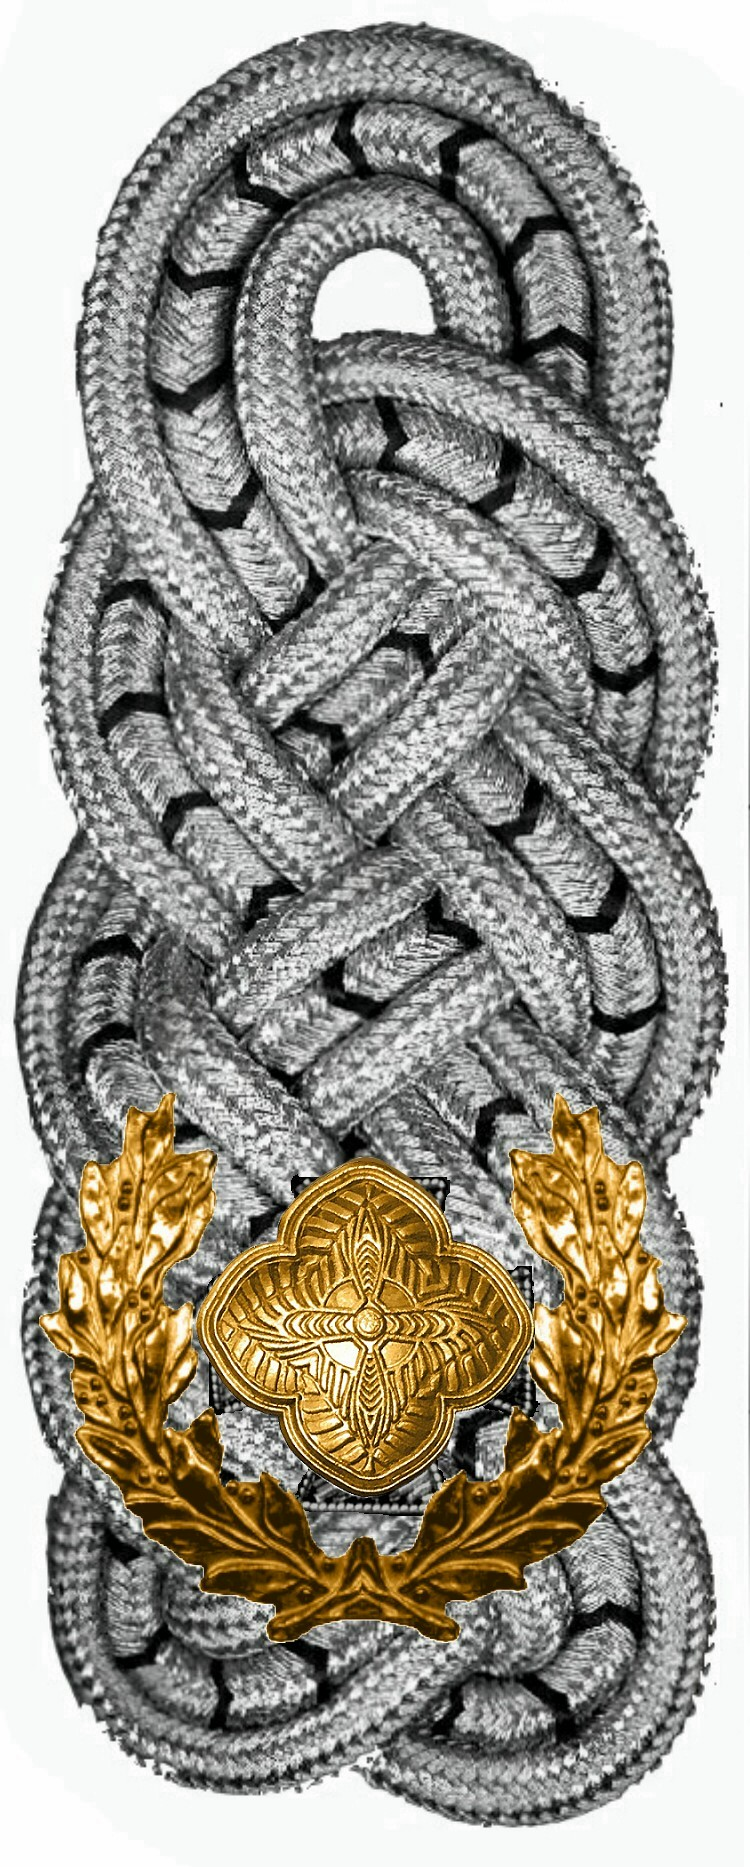 gala-gala-sergeant-major